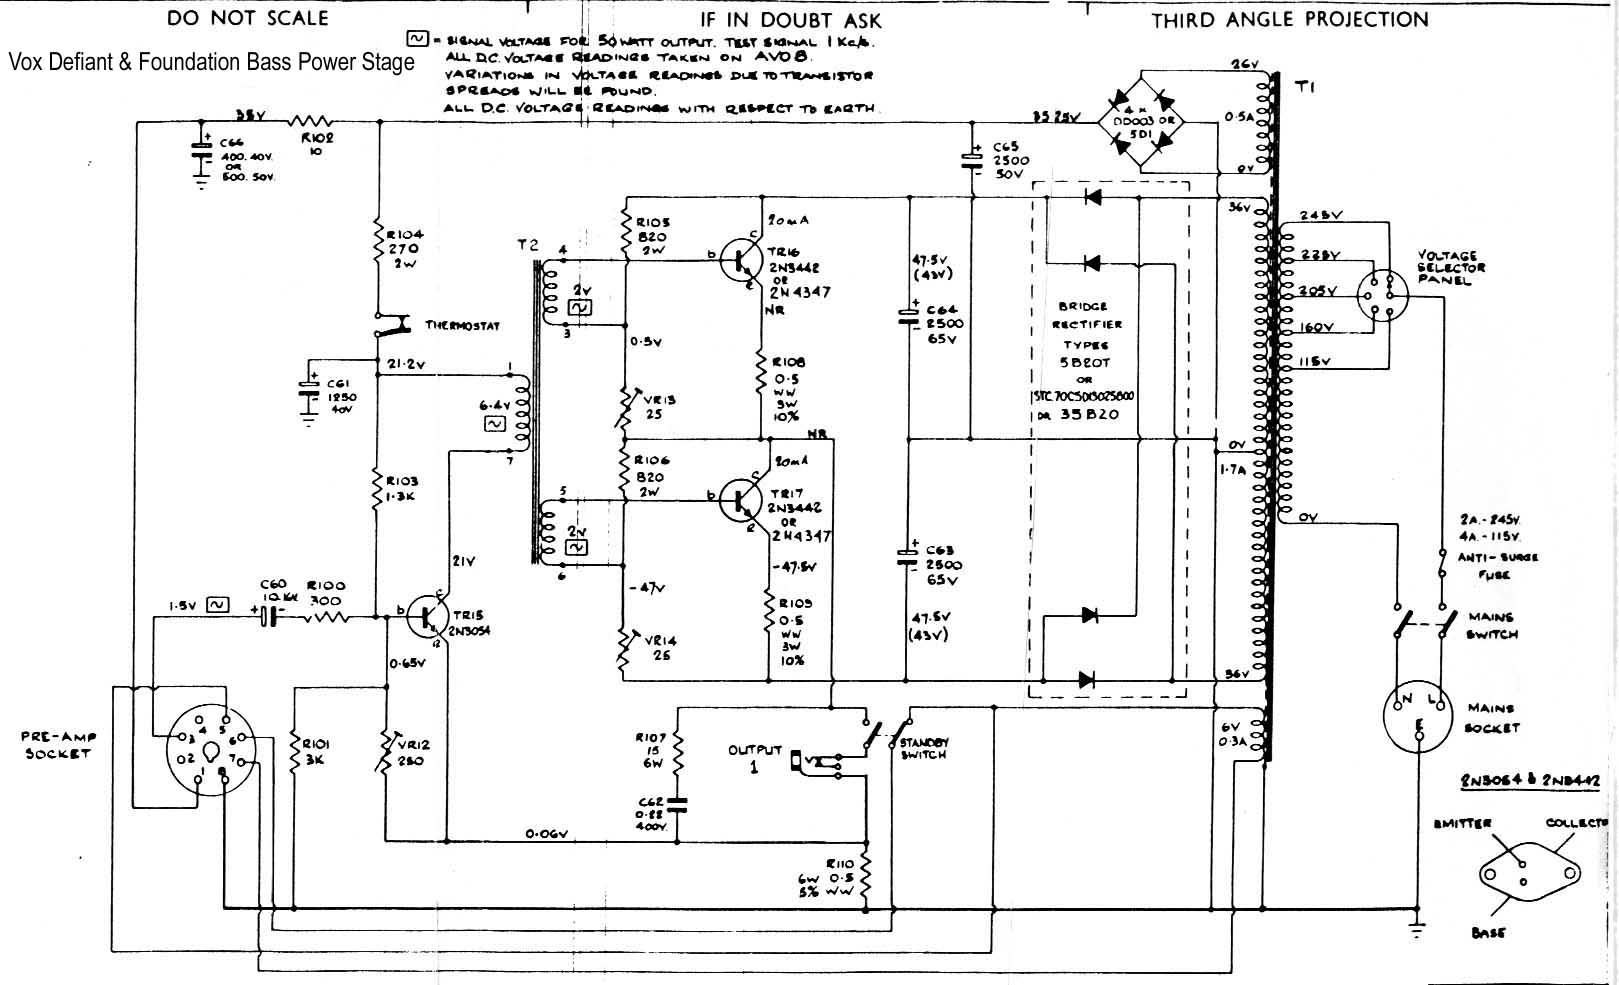 A Queen Mystery The Legend Of Deacy Amp Hackaday Lowpower Amplifier With Digital Volume Control Circuit Diagram 52 Thoughts On